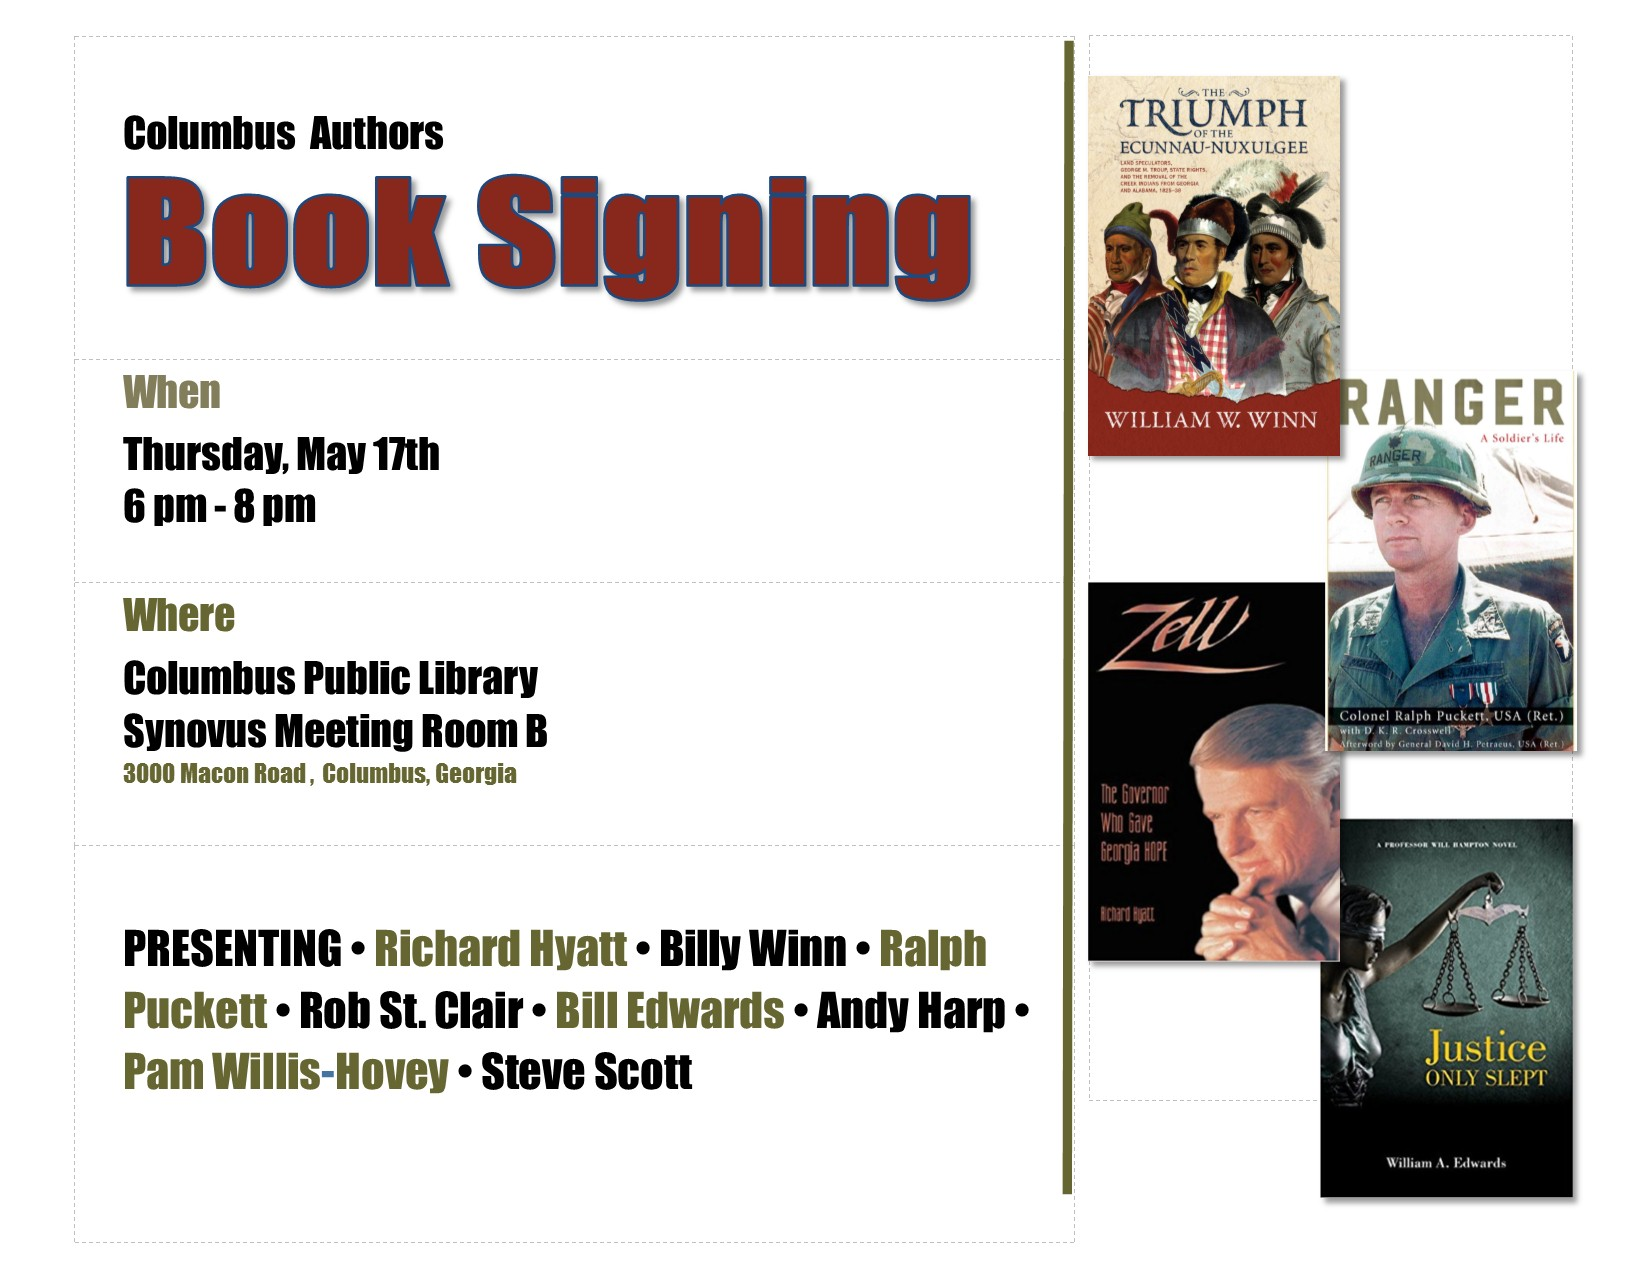 Columbus Authors Book Signing